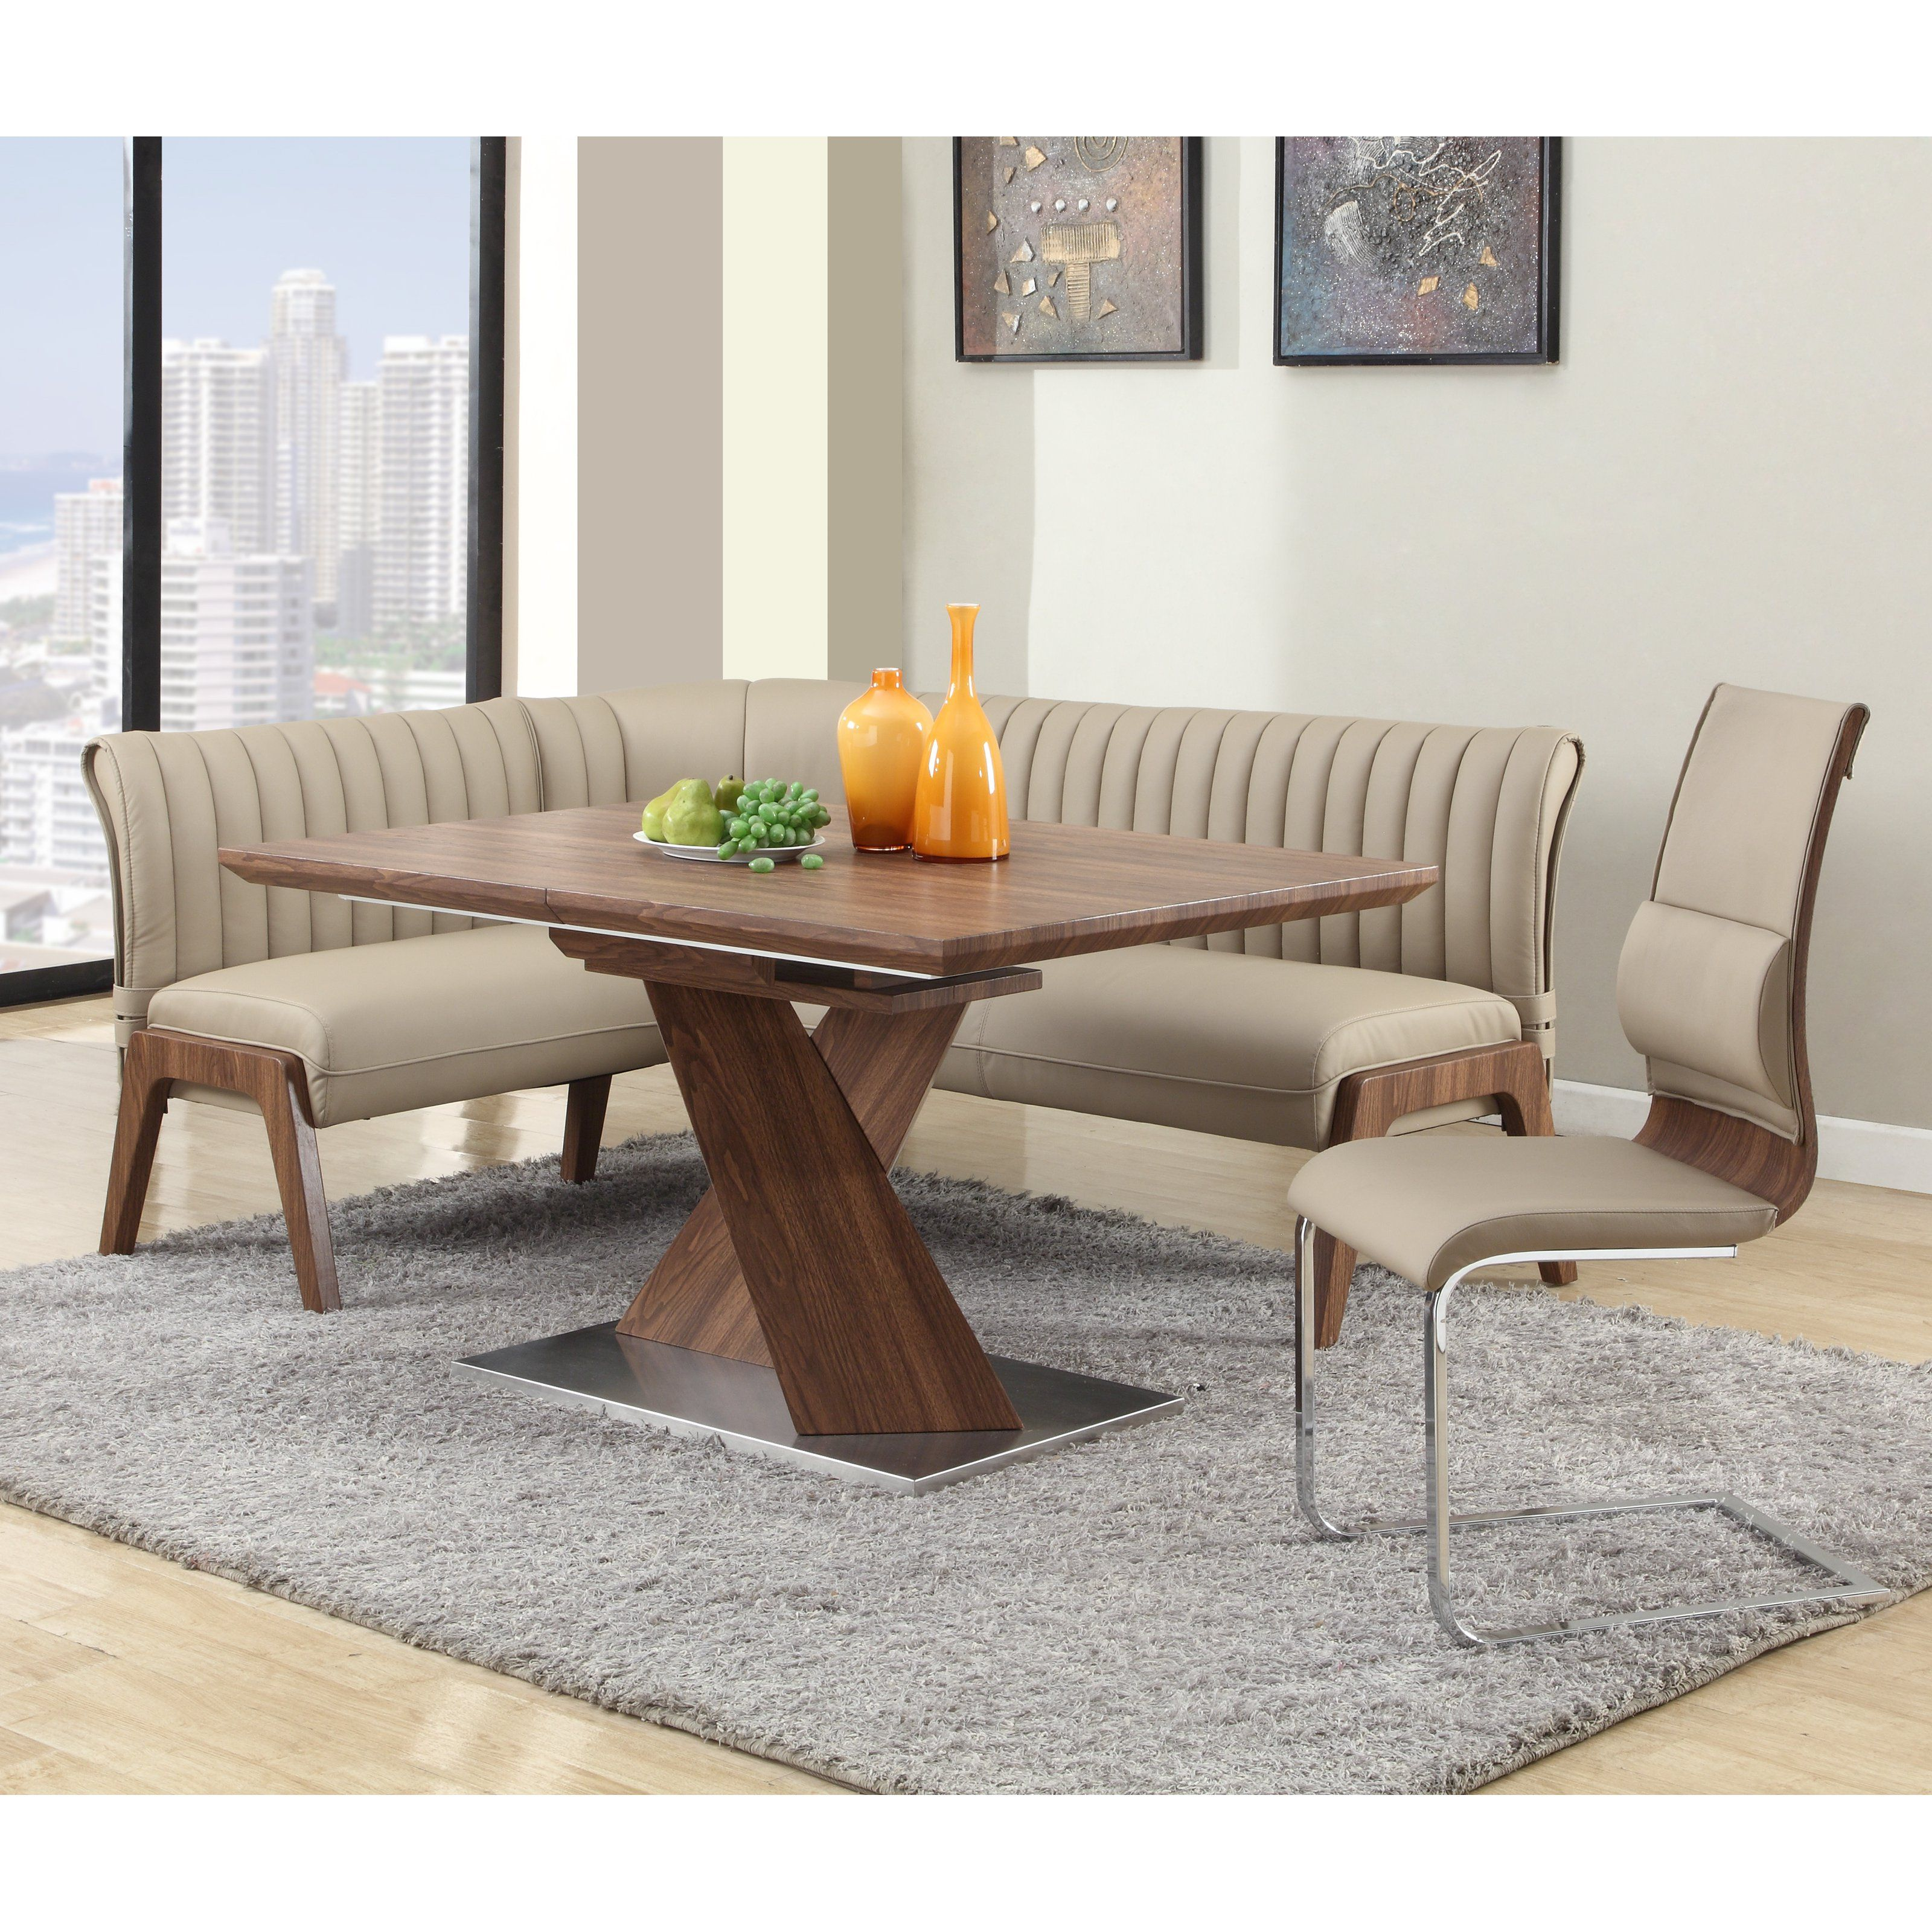 For a dining set that boasts understated contemporary elegance ...